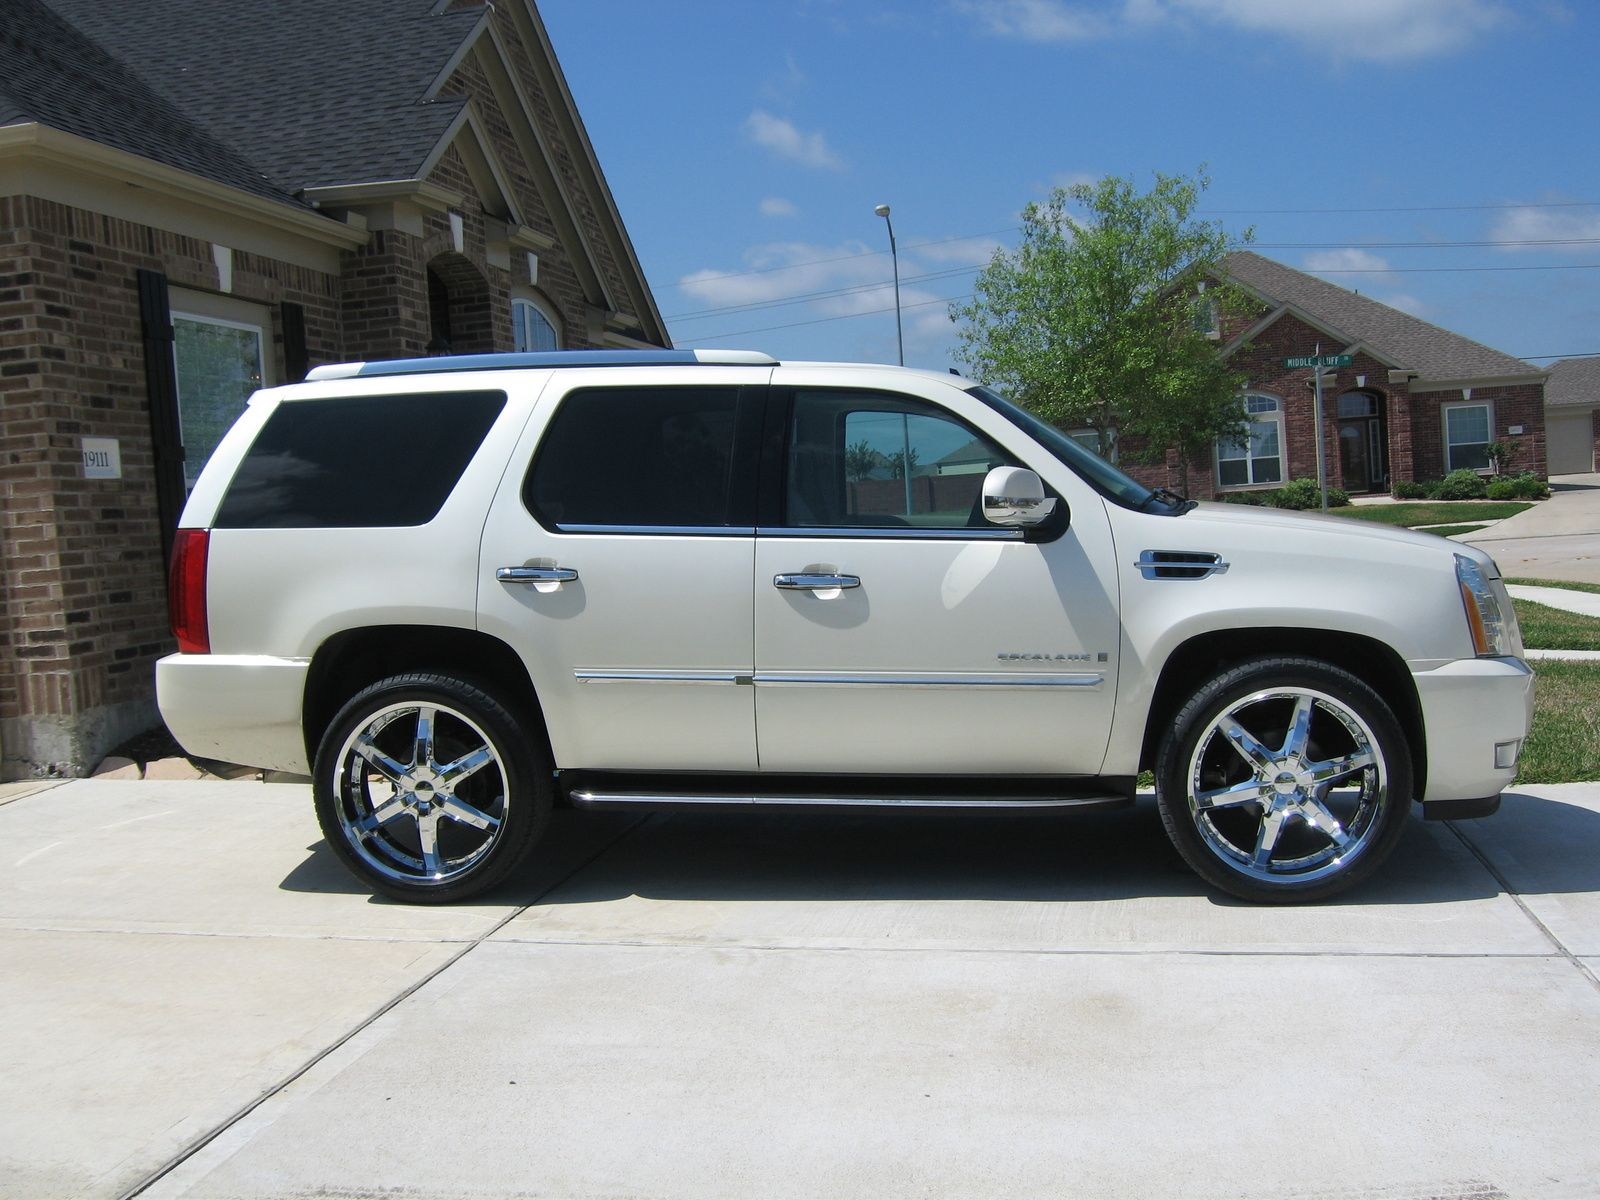 cadillac escalade on 26 inch rims 2008 find the classic. Black Bedroom Furniture Sets. Home Design Ideas